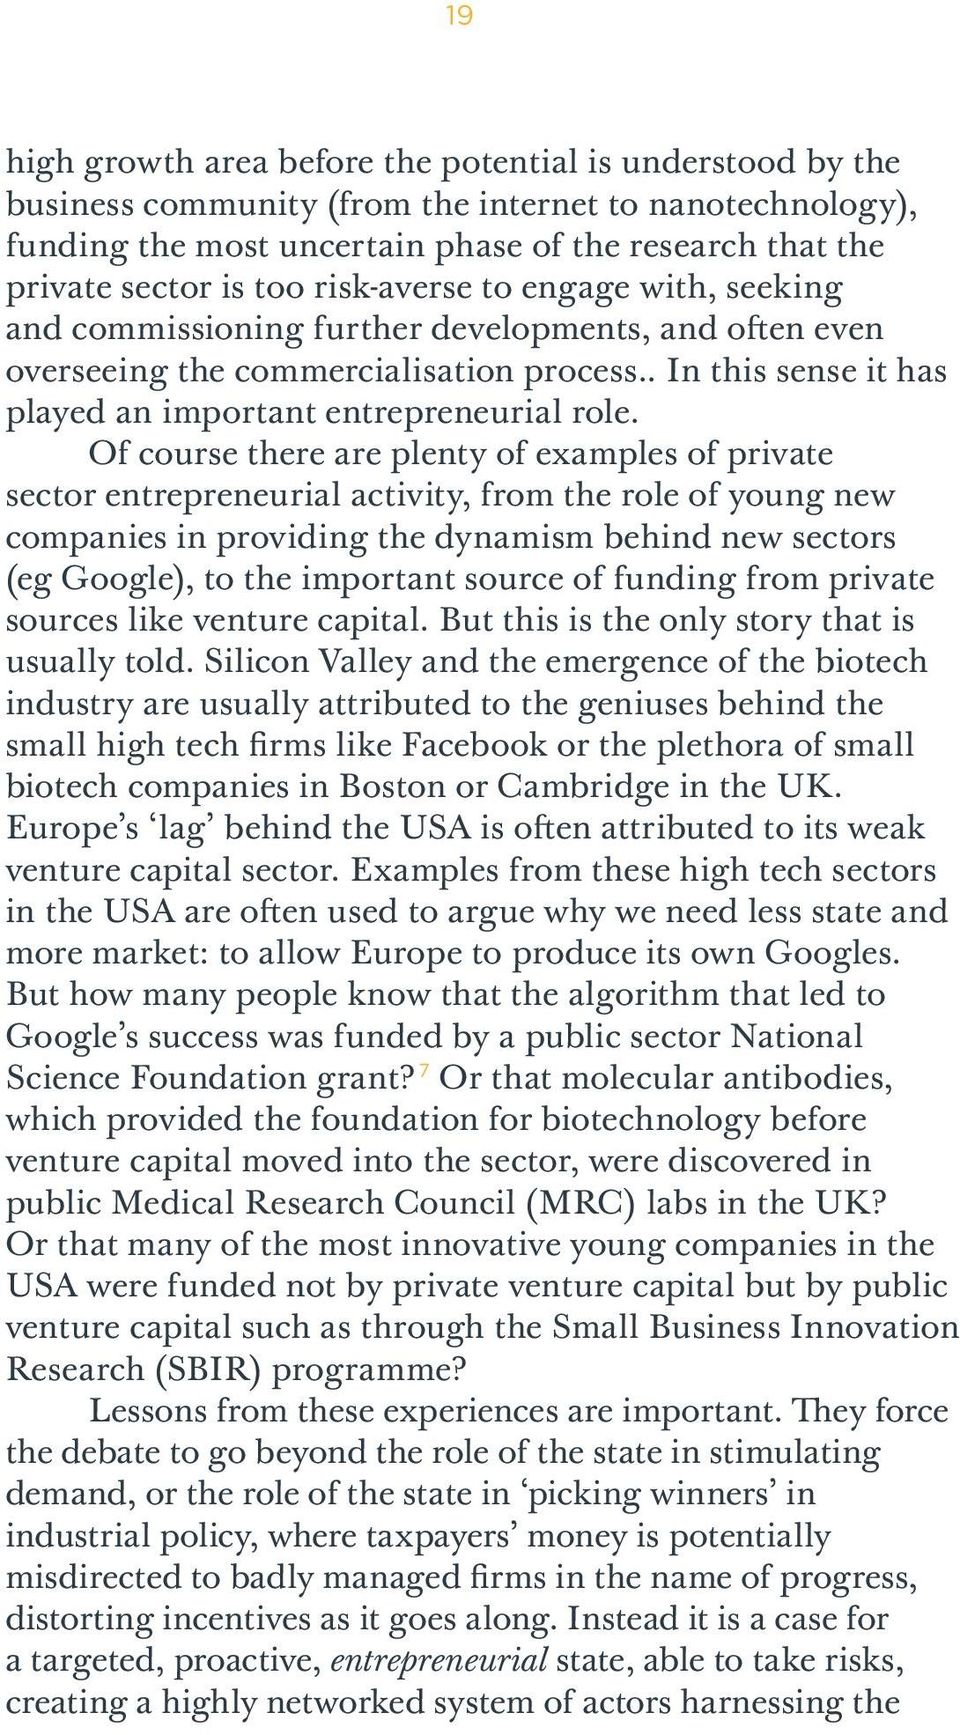 Of course there are plenty of examples of private sector entrepreneurial activity, from the role of young new companies in providing the dynamism behind new sectors (eg Google), to the important